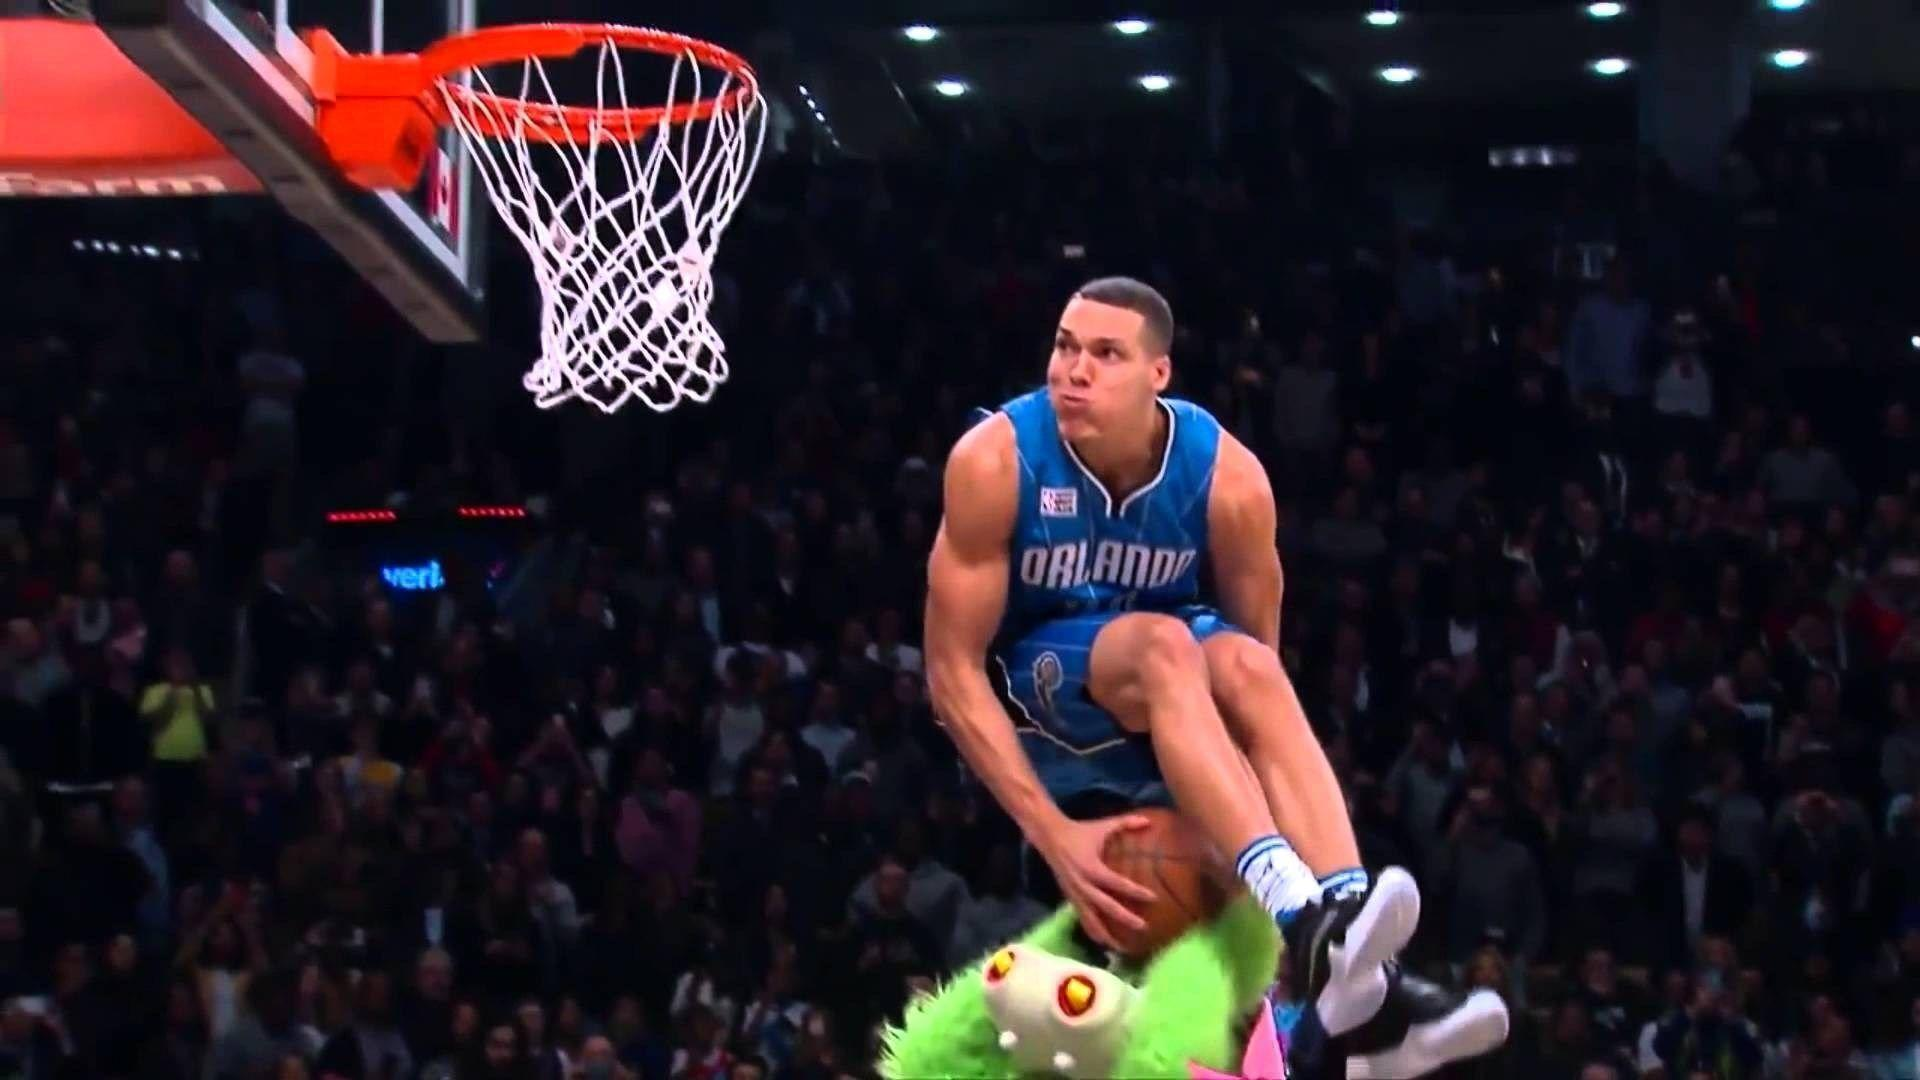 zach lavine dunk contest wallpapers » Wallppapers Gallery